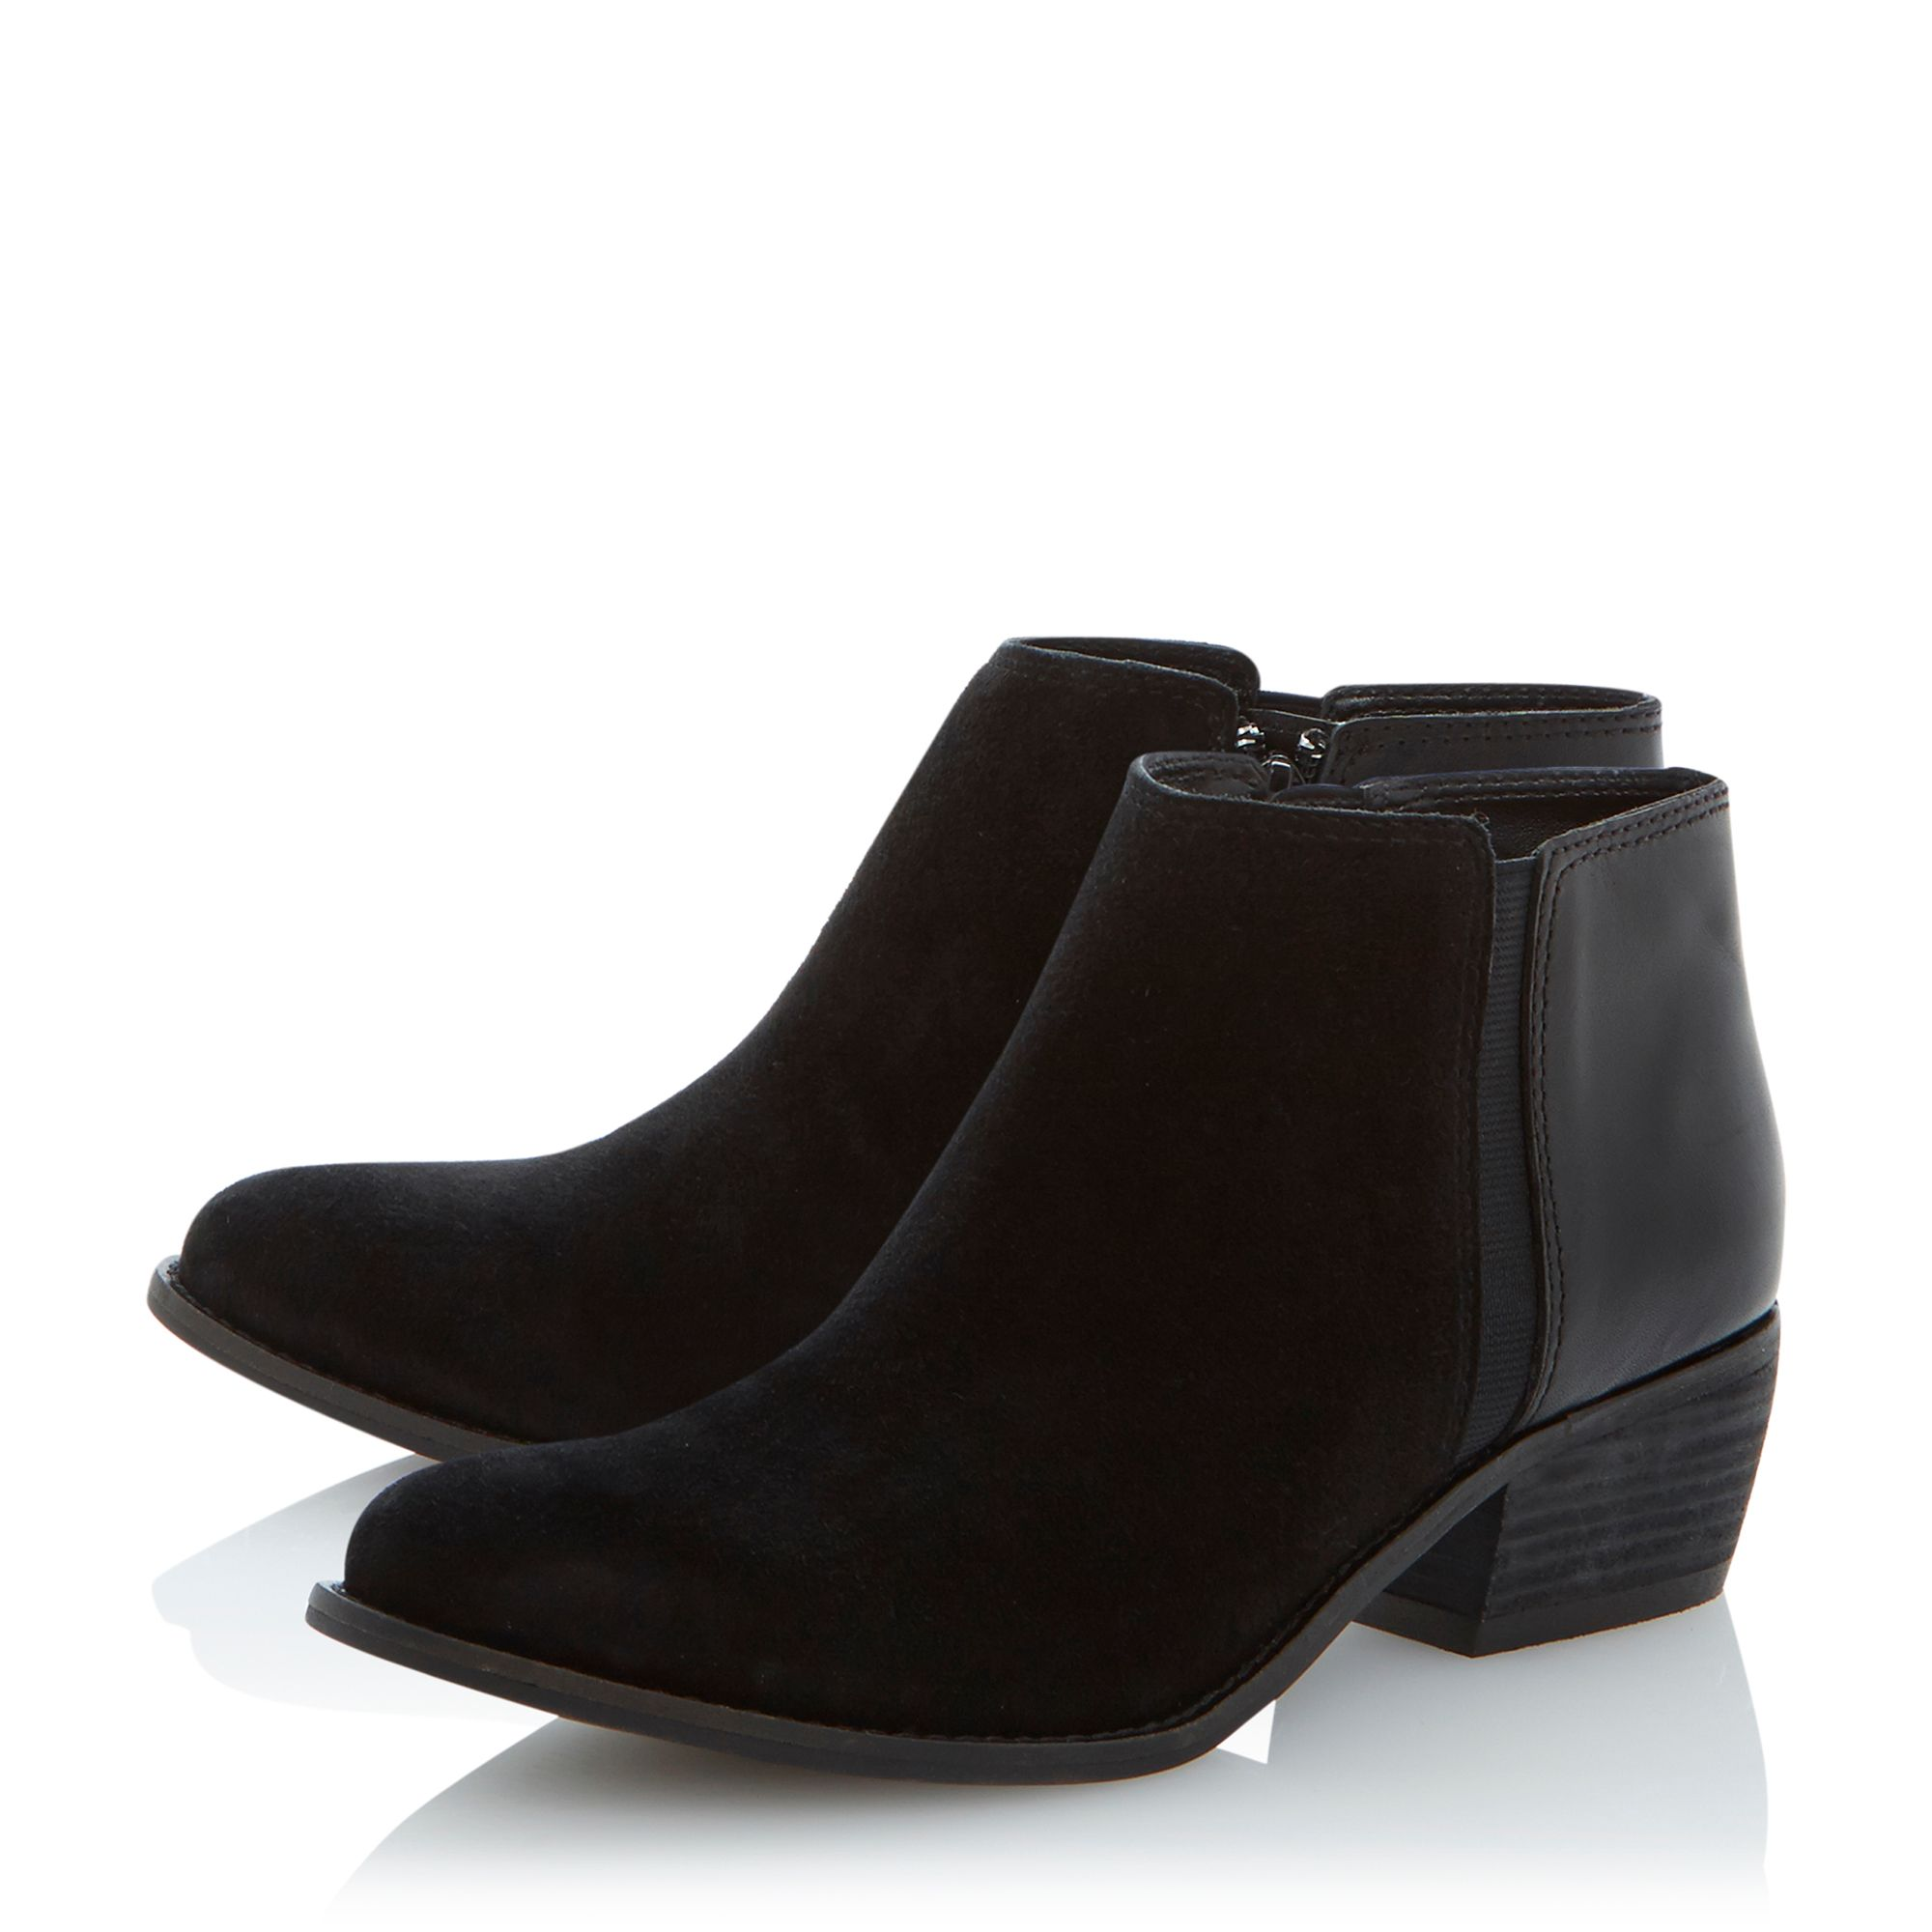 Penelope leather low ankle boots